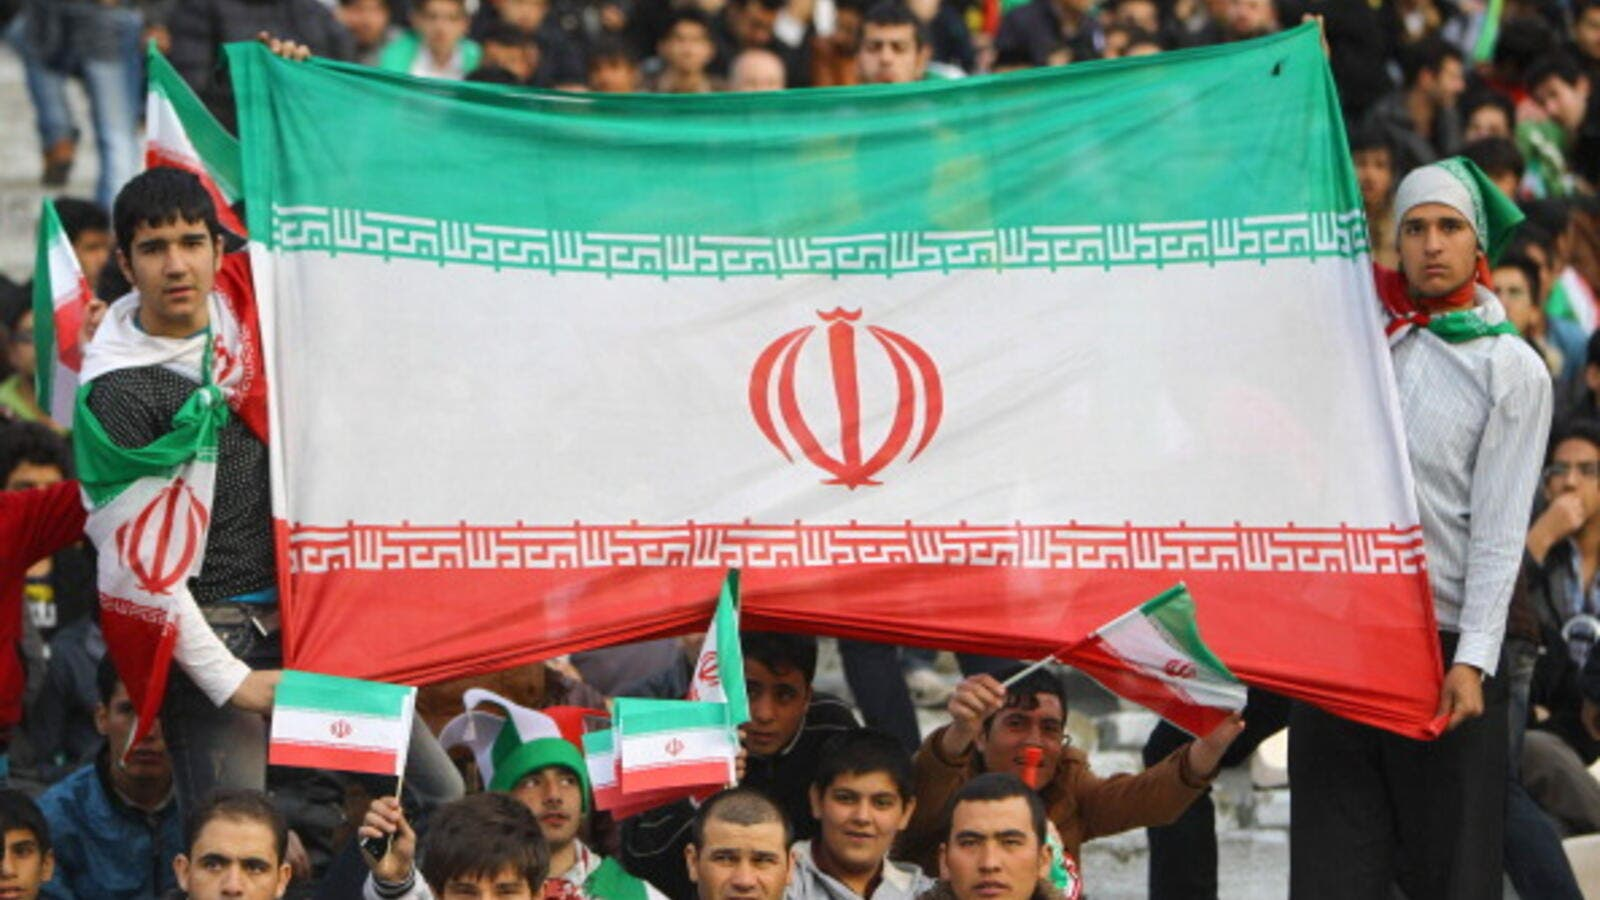 Iranian fans are looking forward to Team Melli's participation in the 2018 World Cup